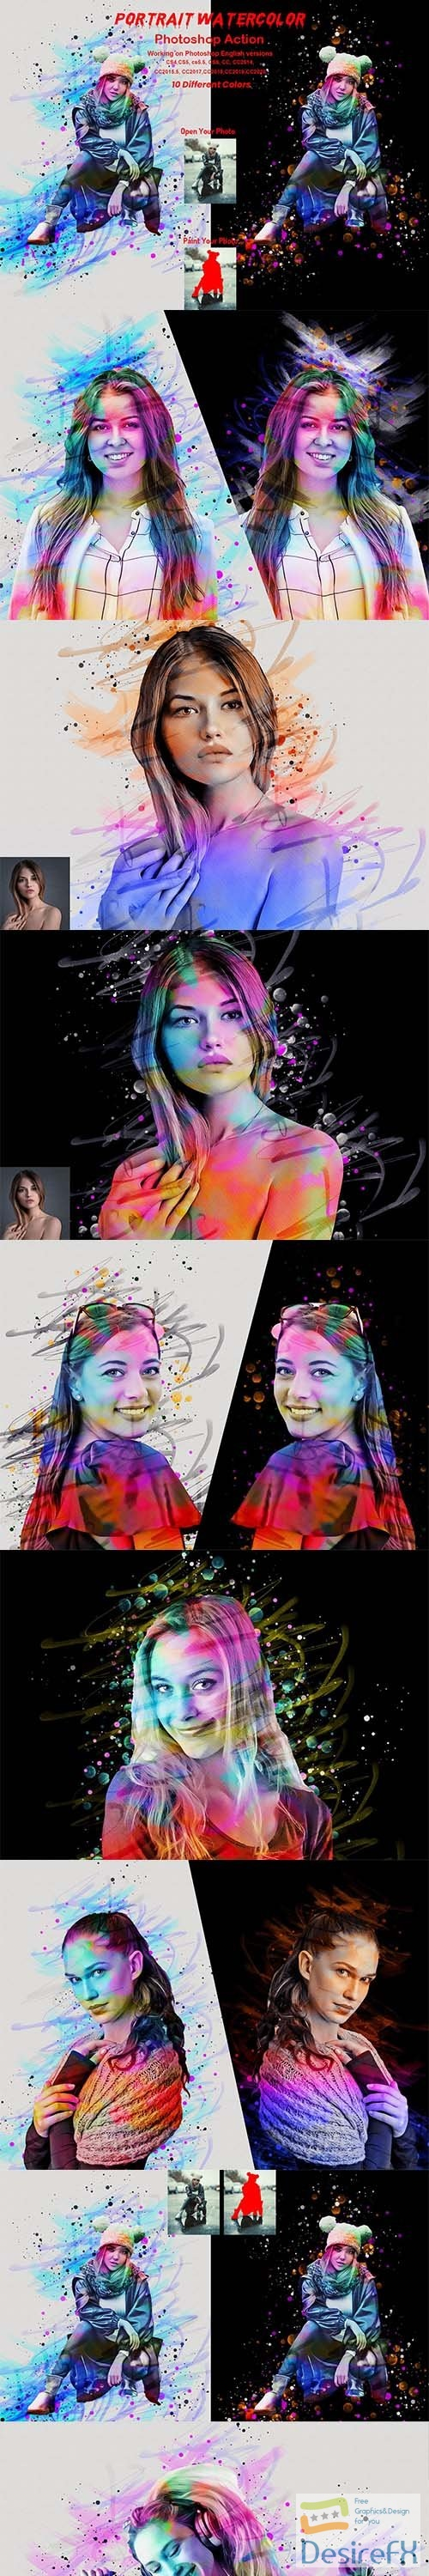 CreativeMarket - Portrait Watercolor Photoshop Action 5872719